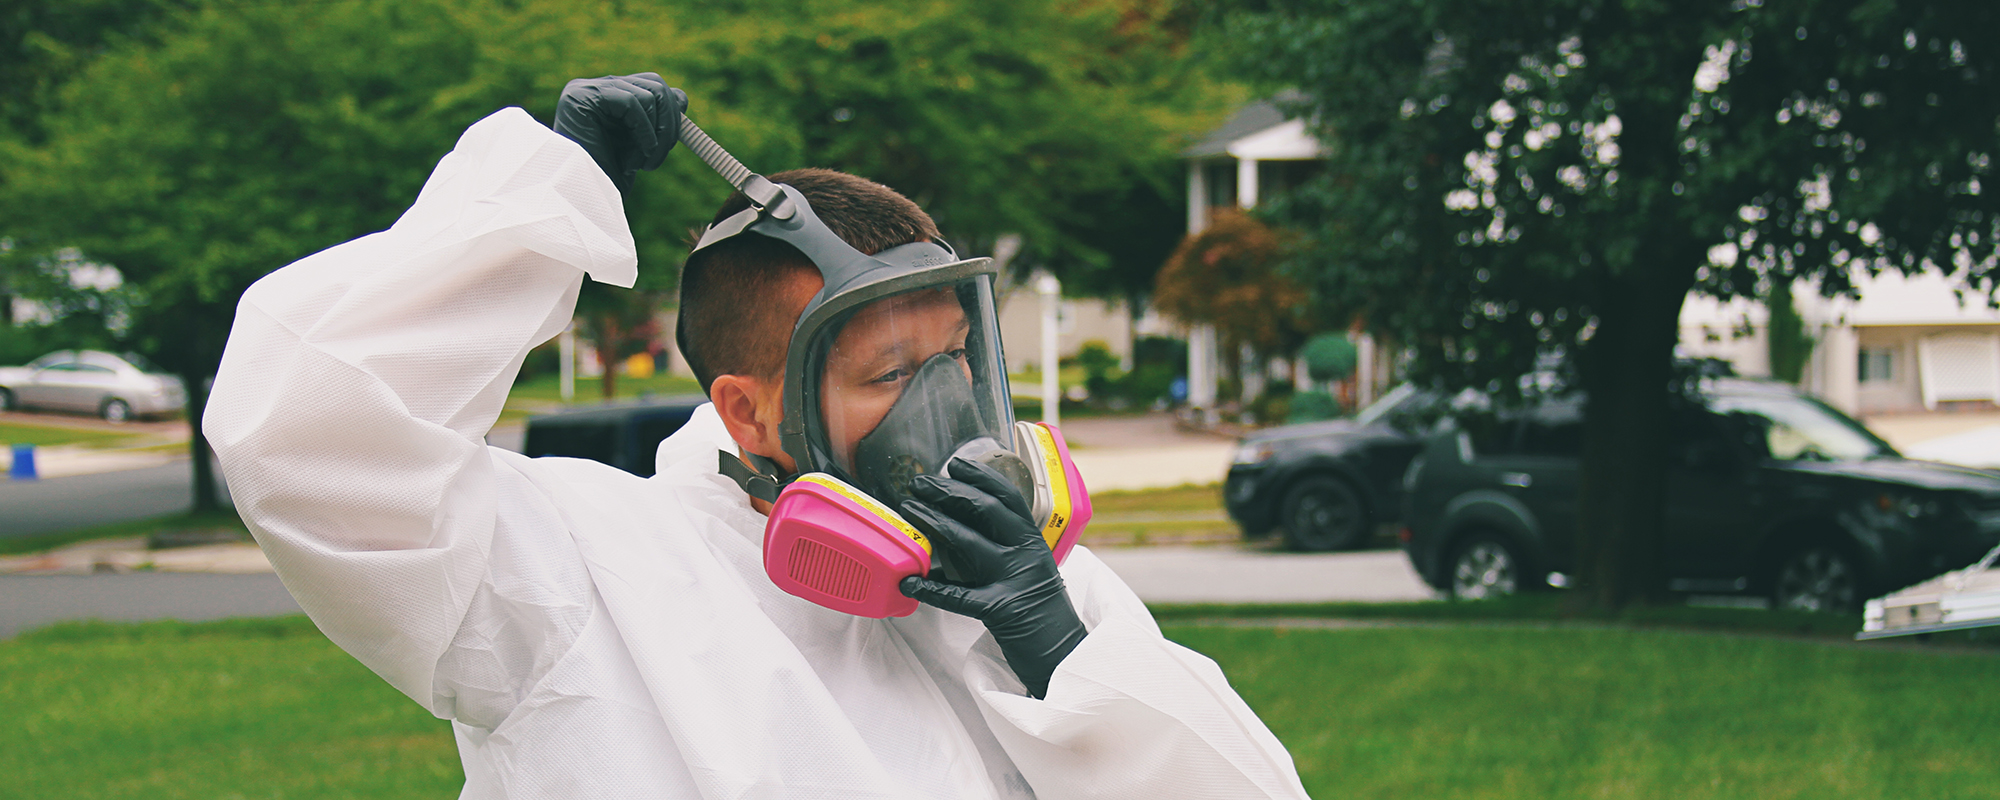 mold-remediation-washington-township-nj